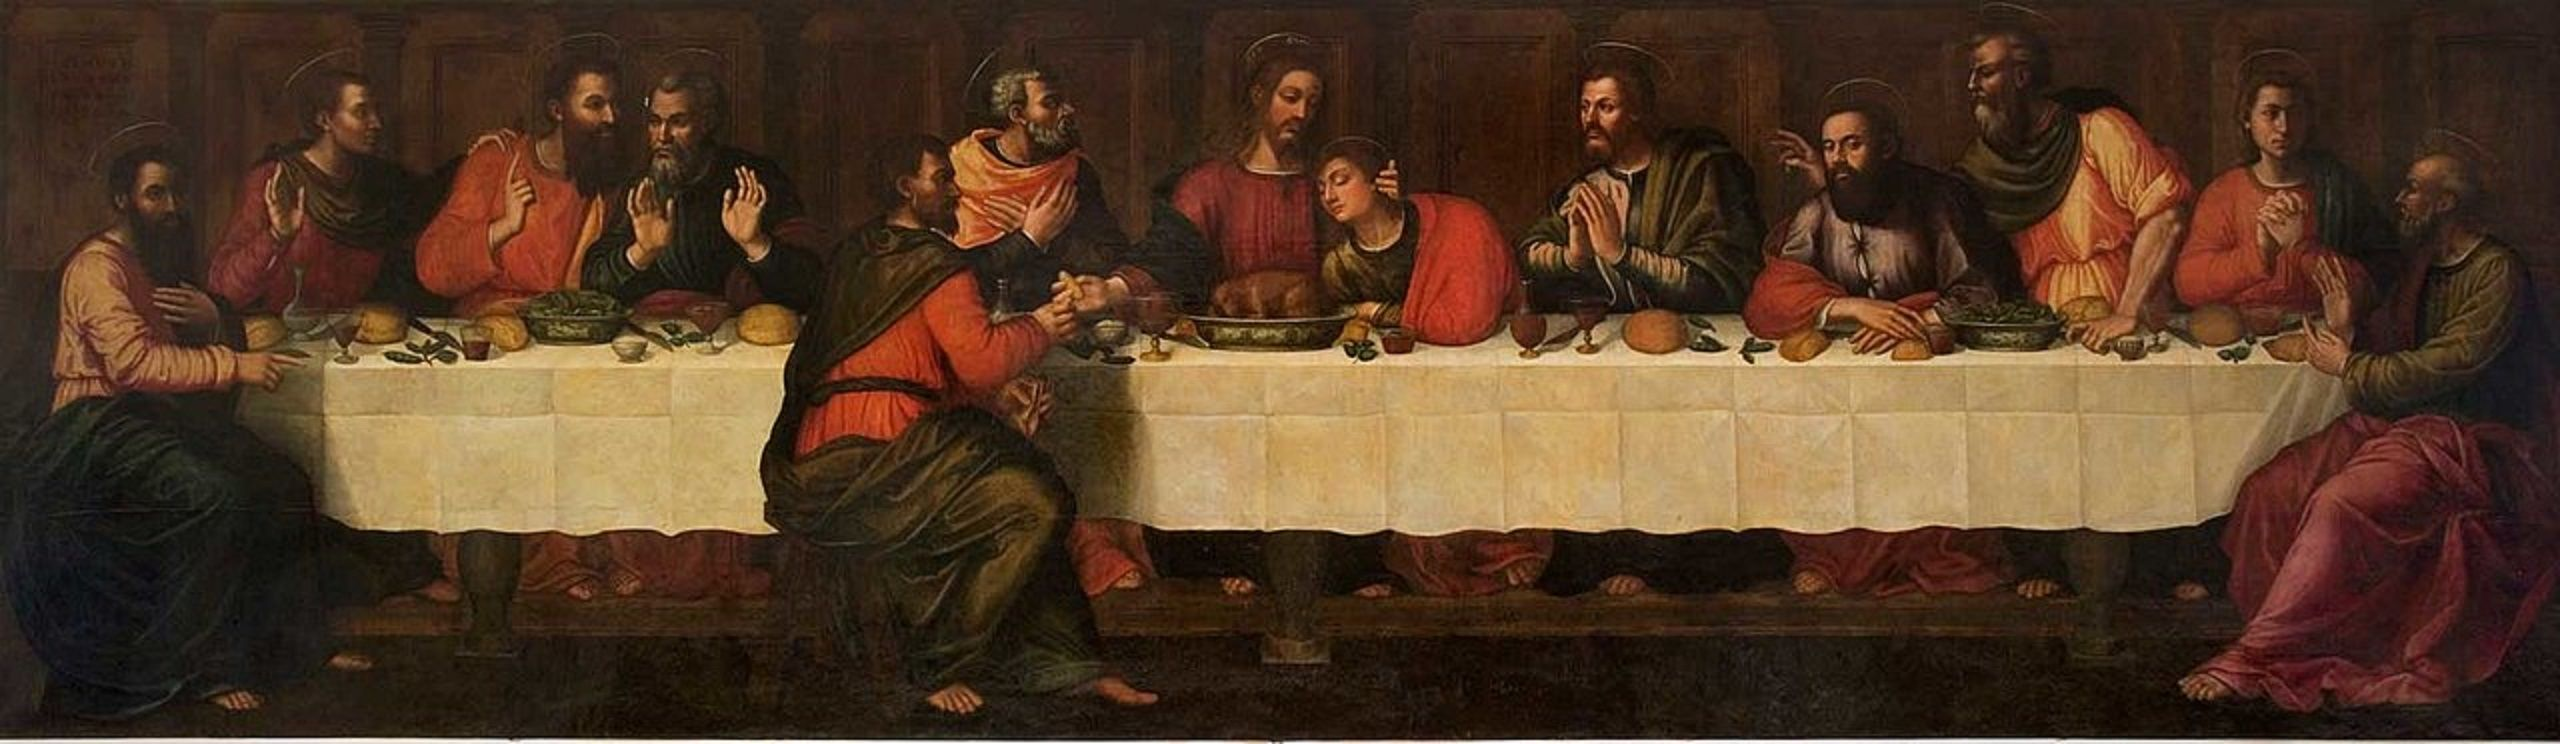 1280px-Plautilla_Nelli_-_The_Last_Supper_larger_version